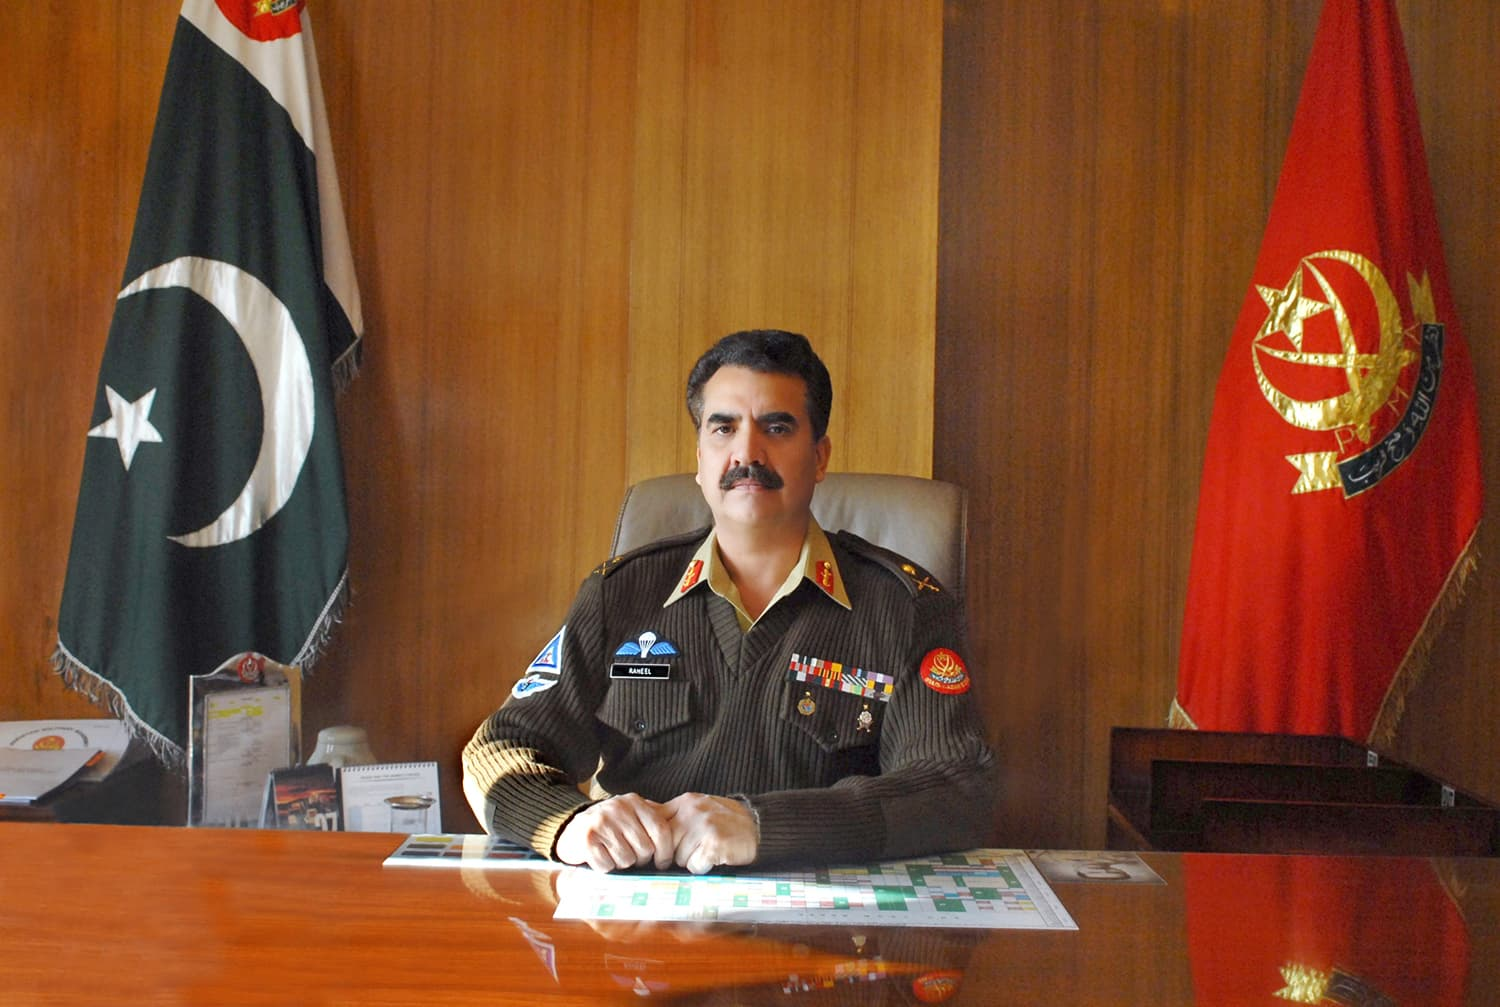 Raheel Sharif was appointed 15th Chief of Army Staff on Nov 28, 2013.